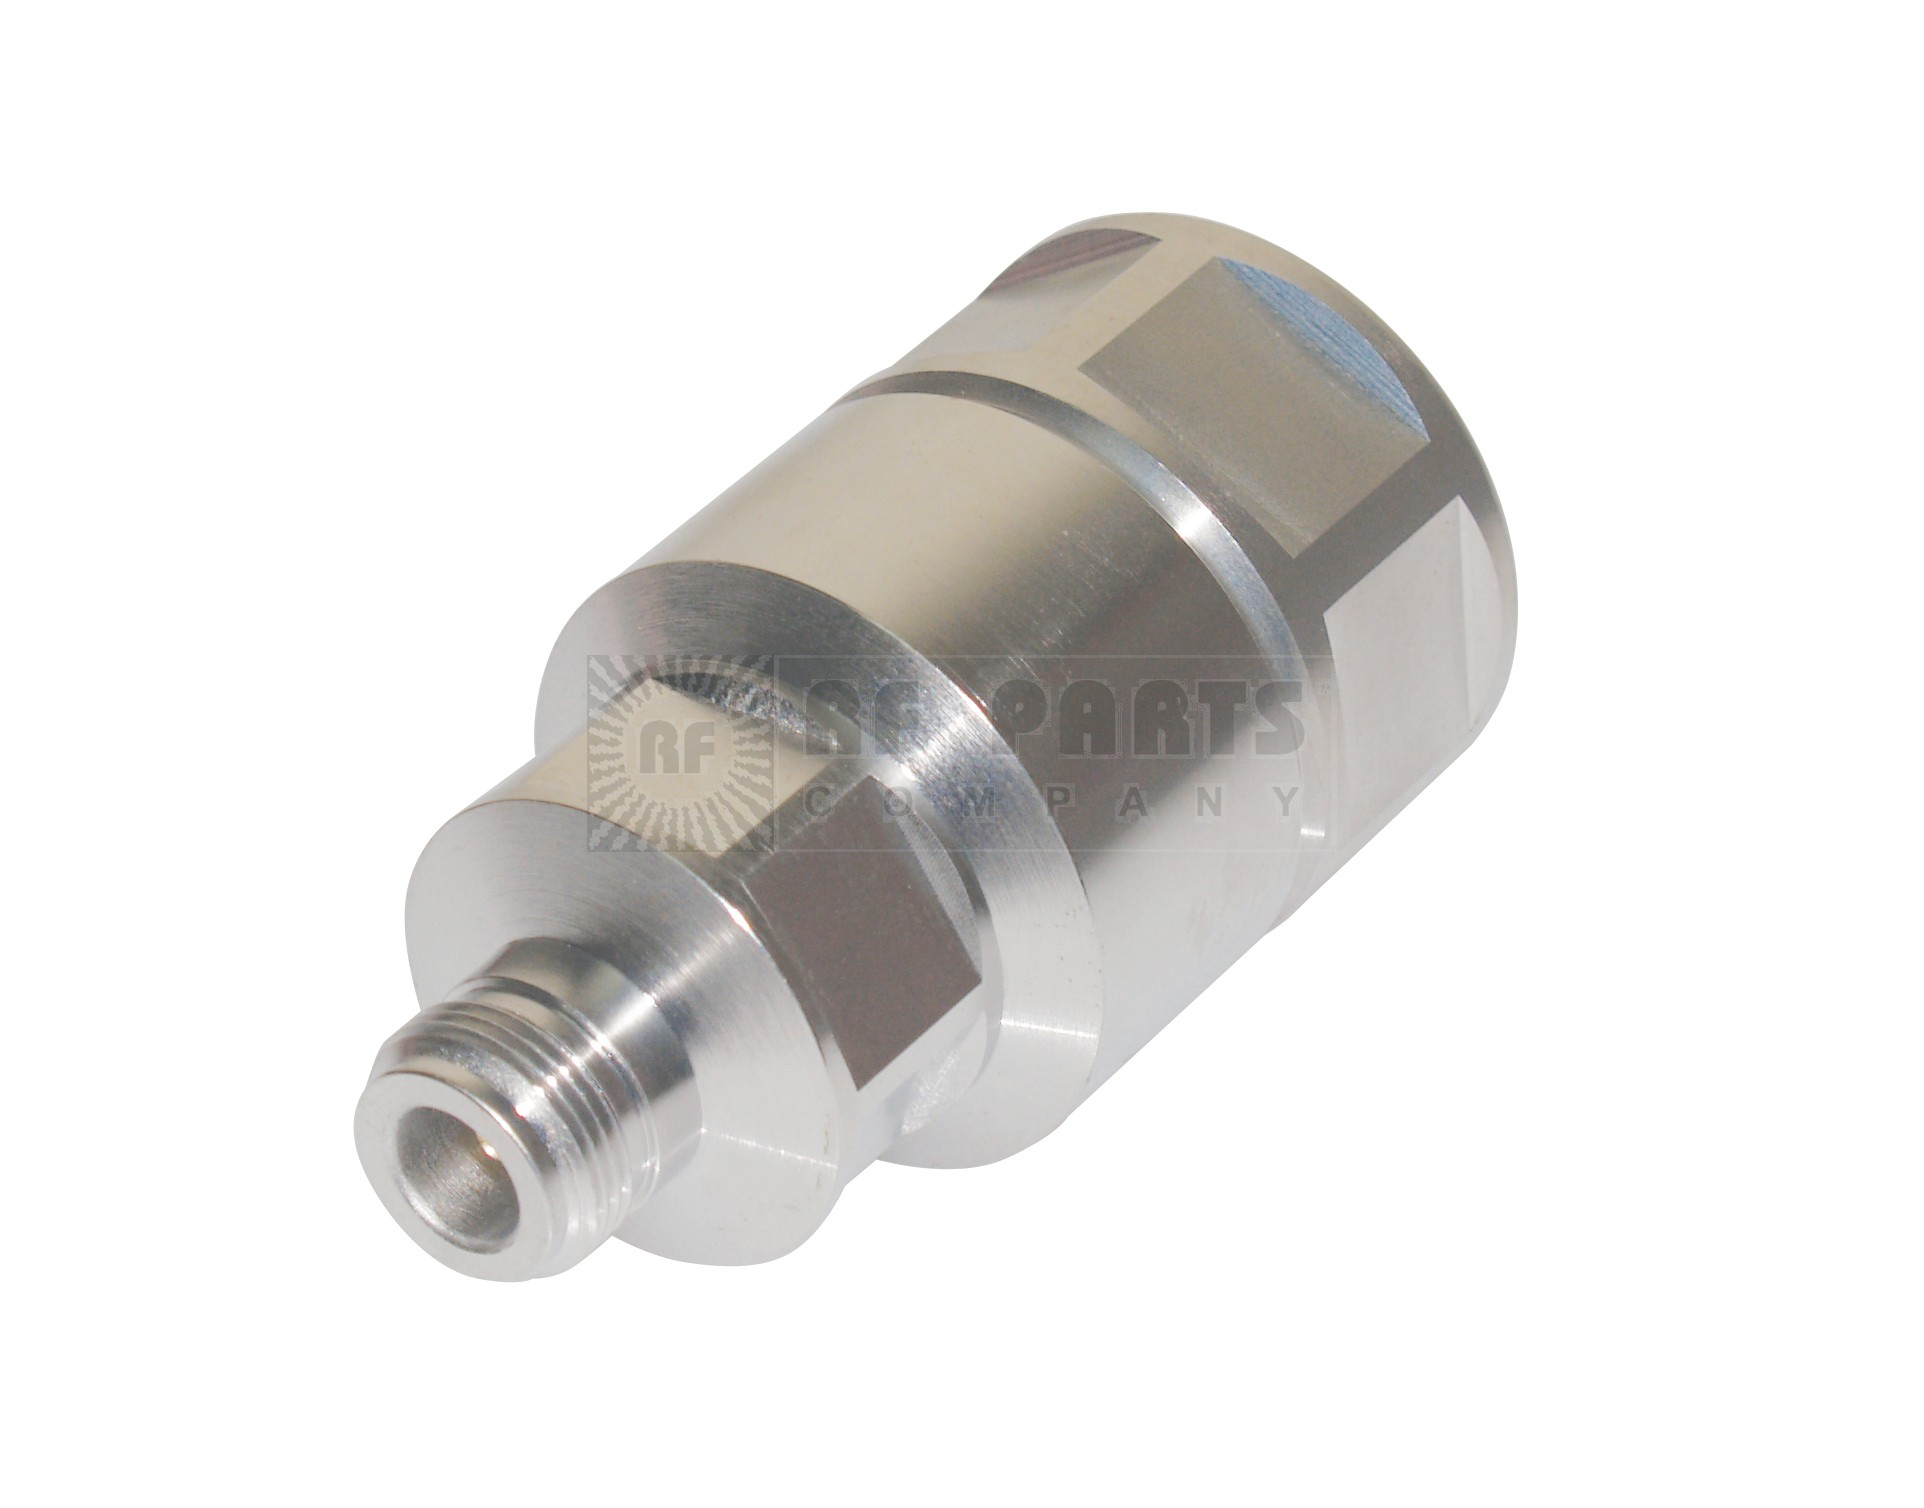 Andrew Heliax Connectors – Wonderful Image Gallery